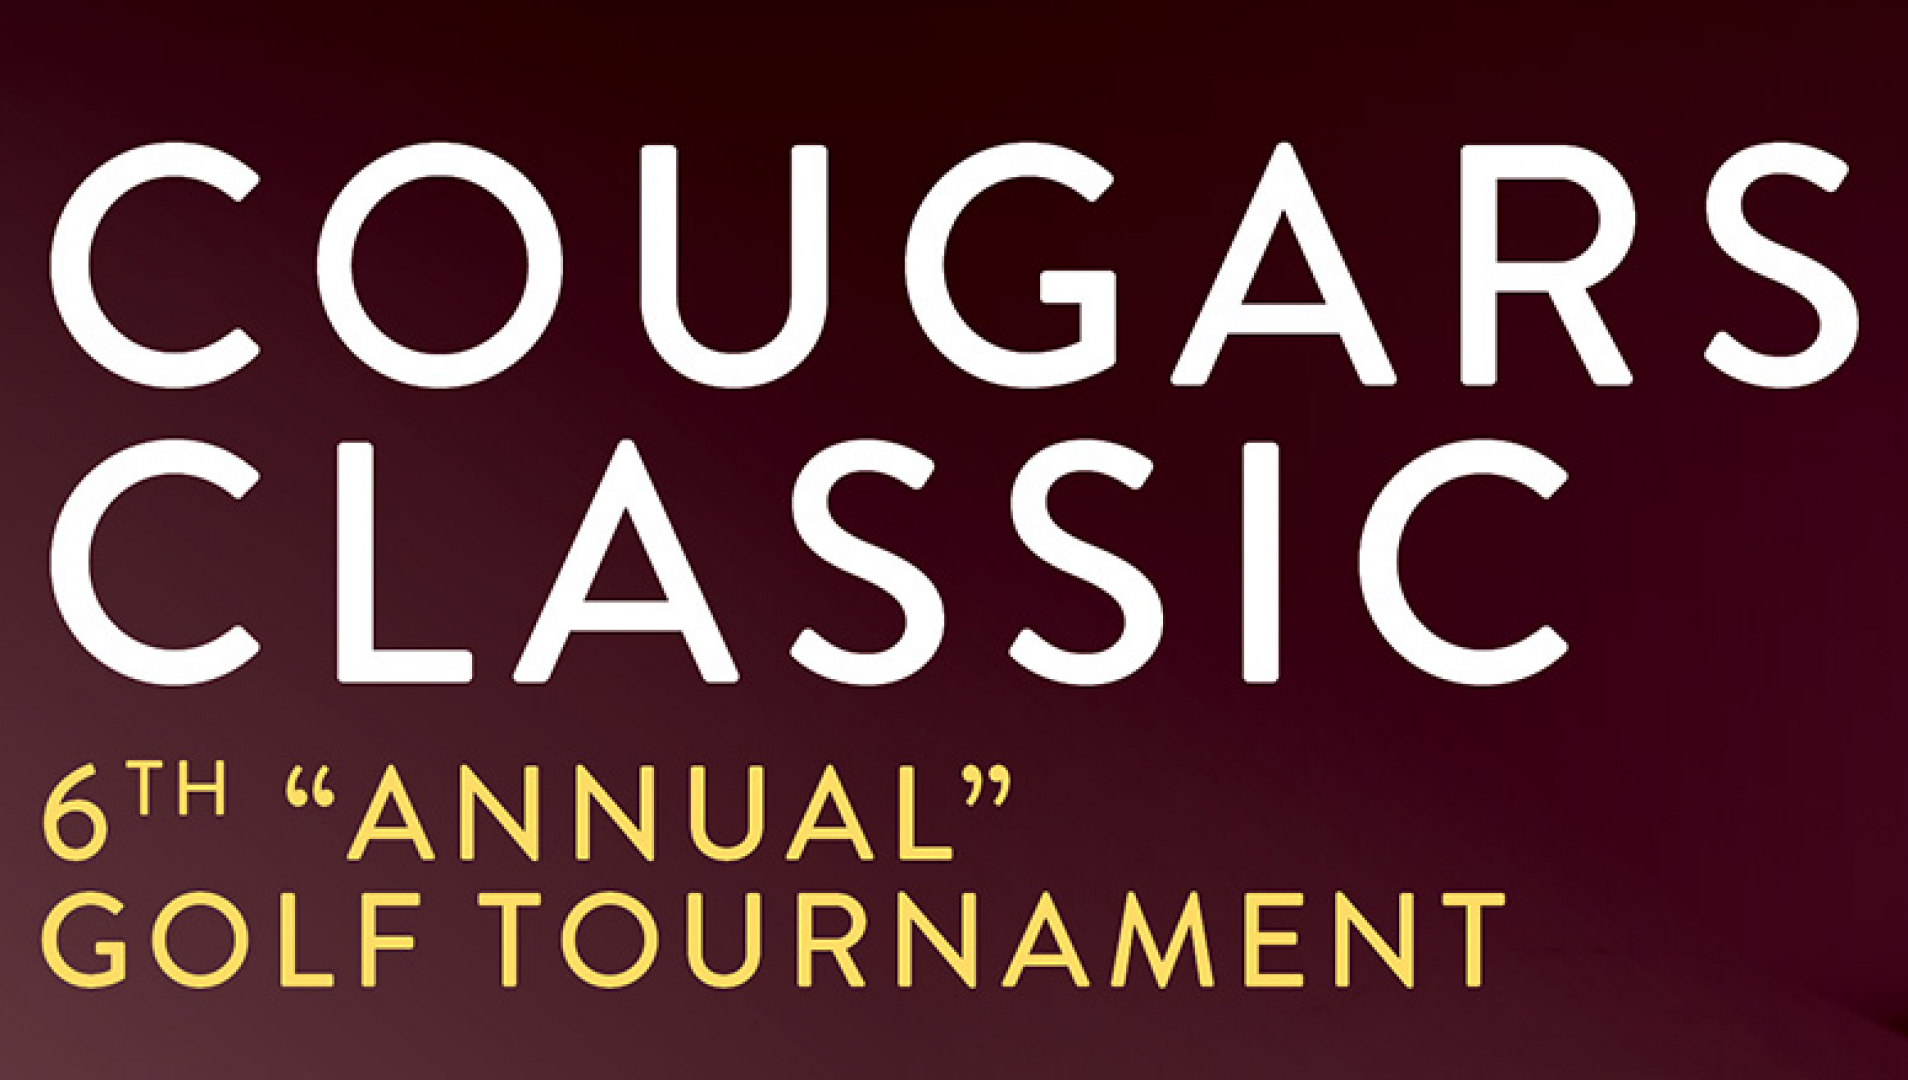 Cougars Classic 2021